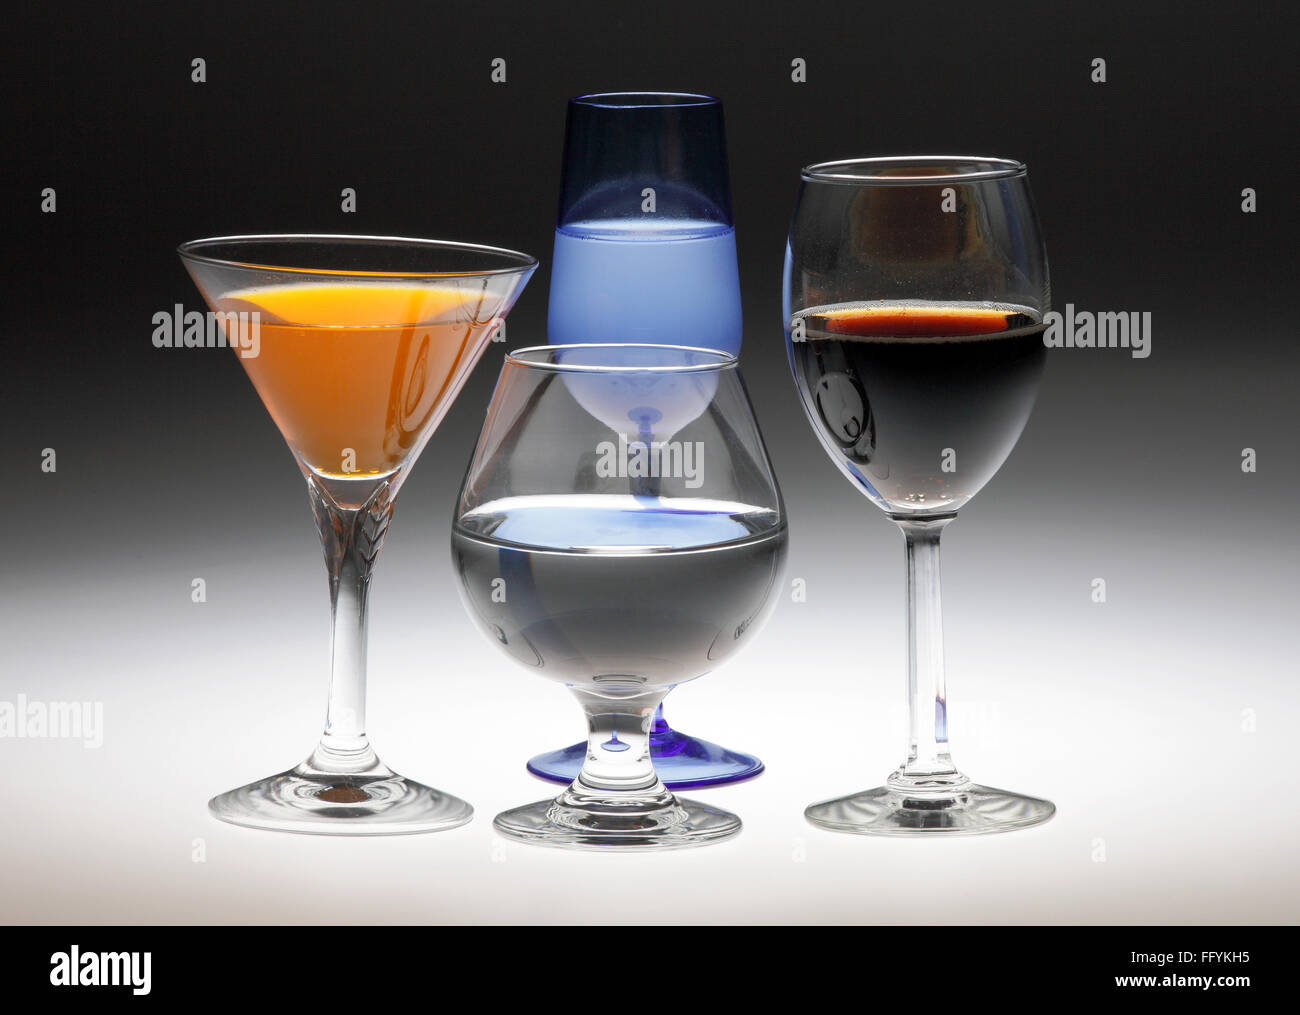 Les verres Verrerie Inde Photo Stock